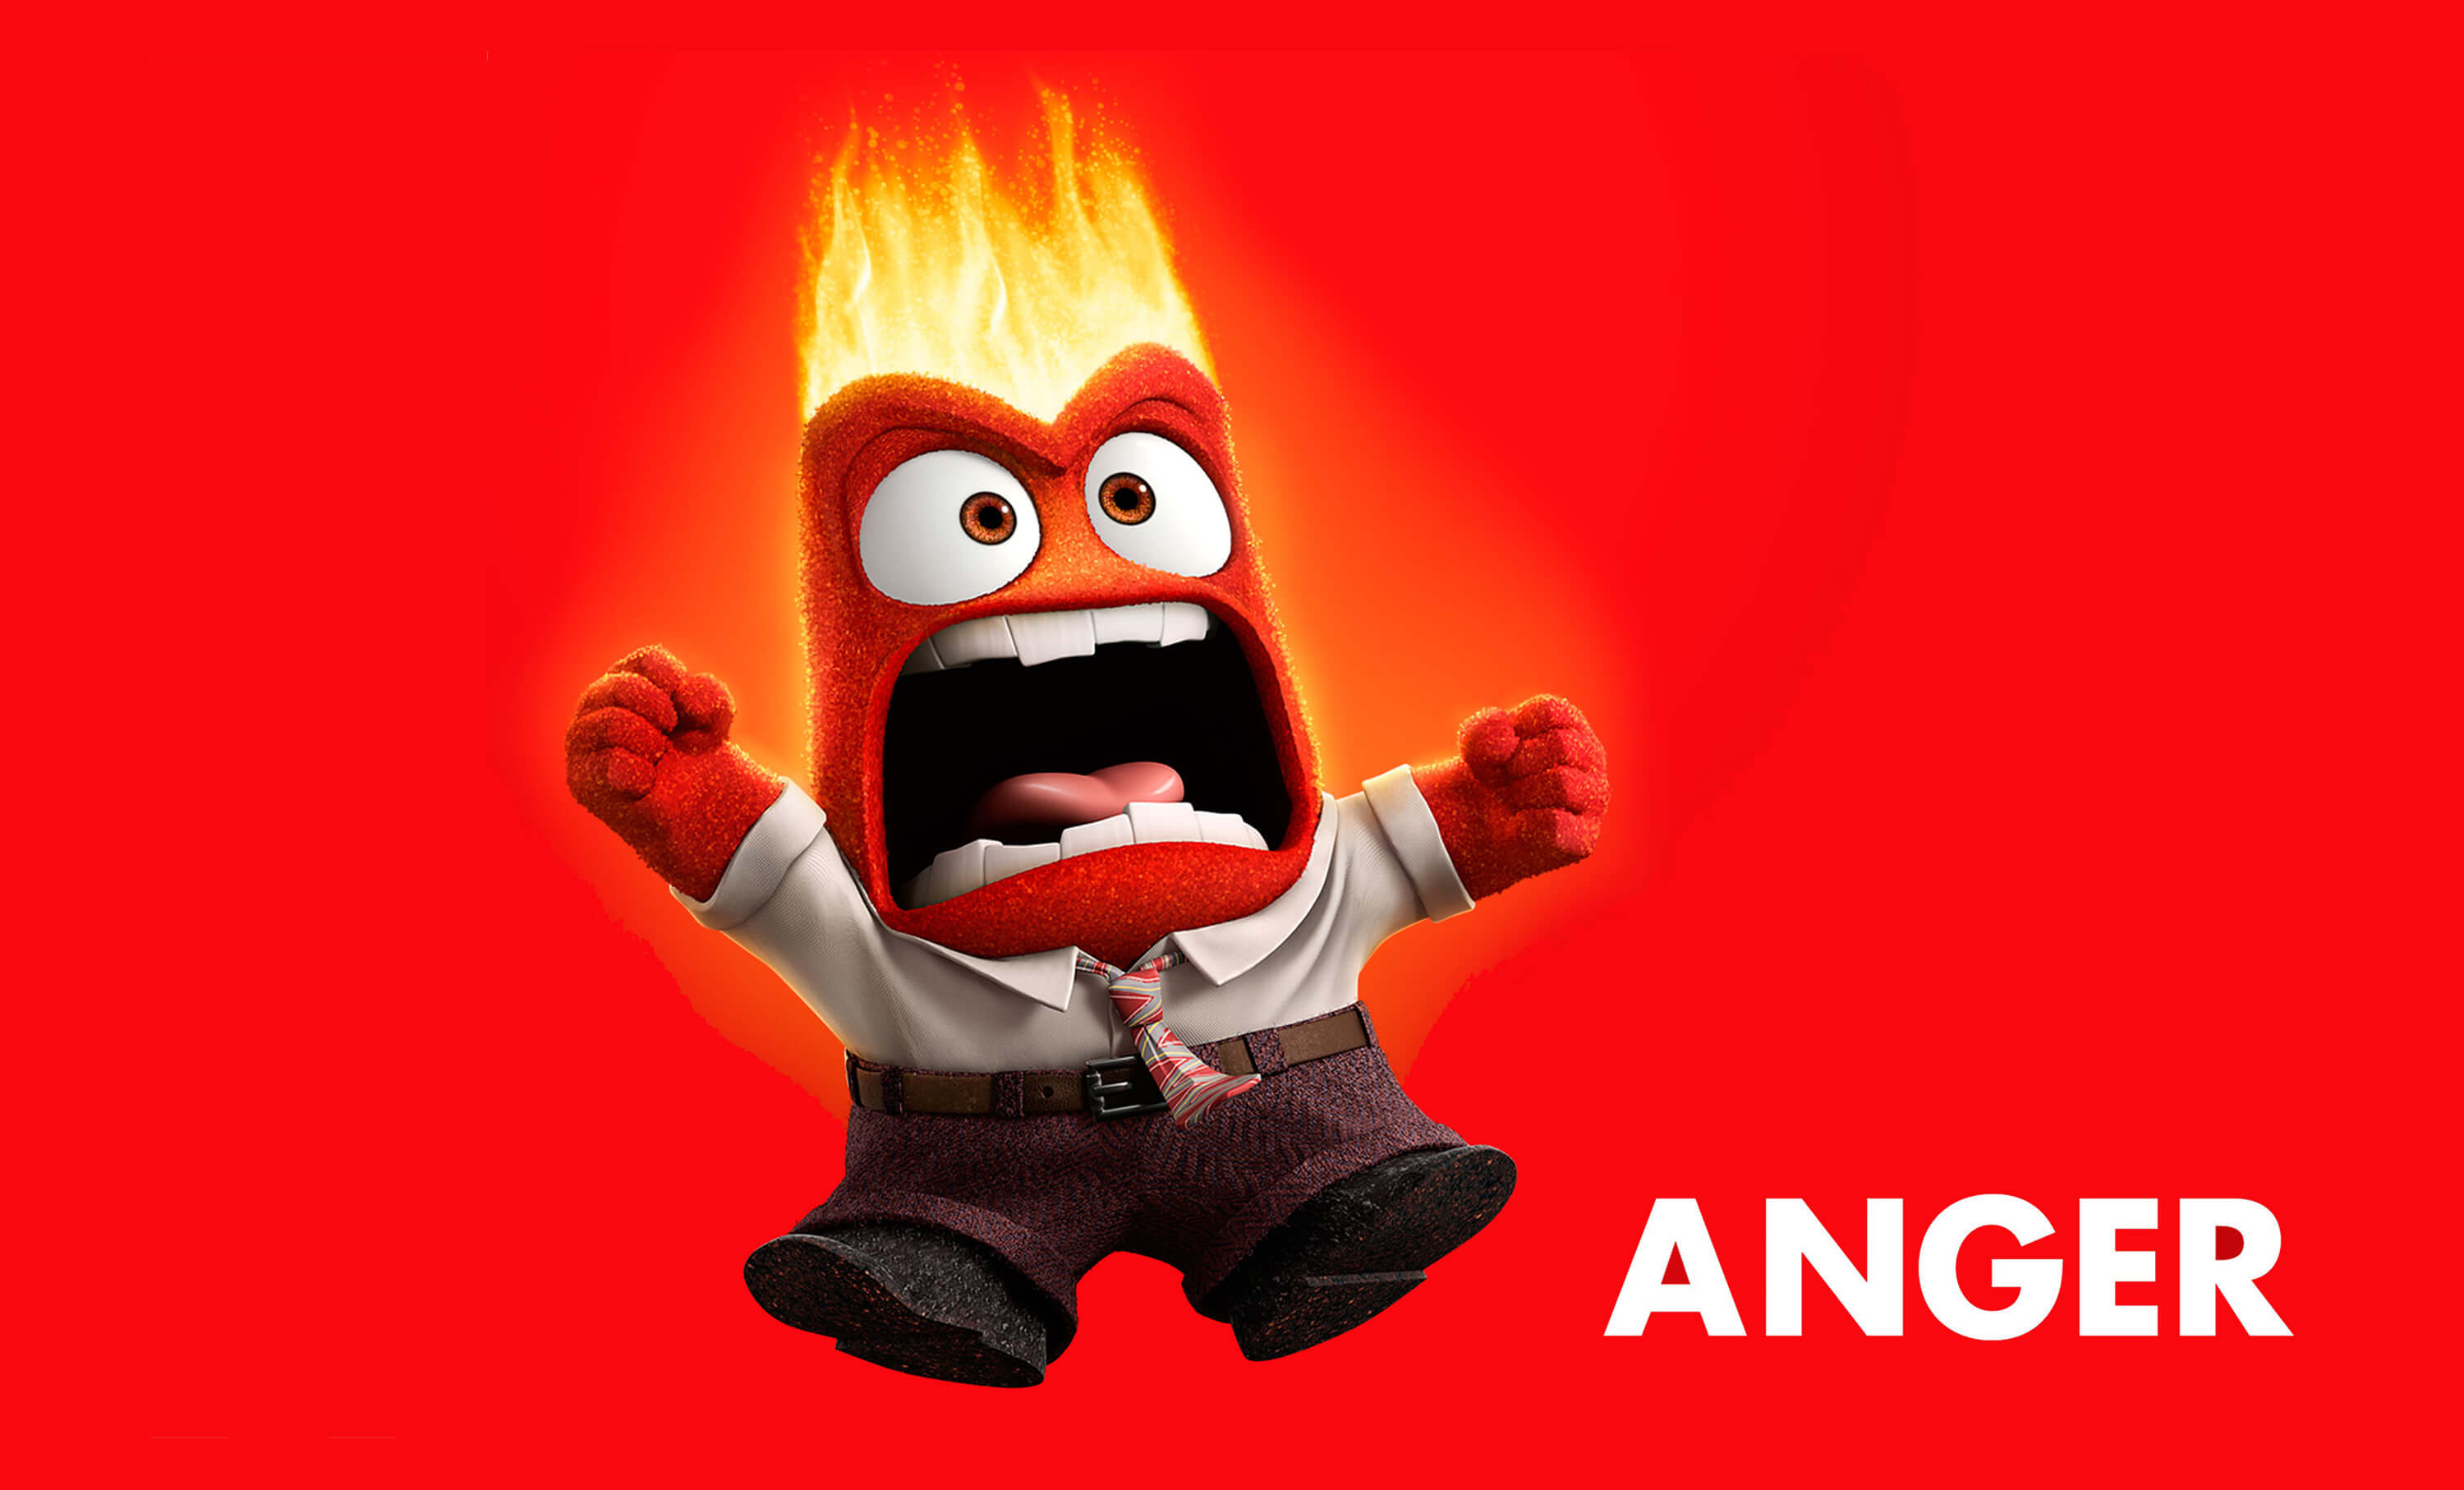 Inside Out In The Office A Closer Look At Anger